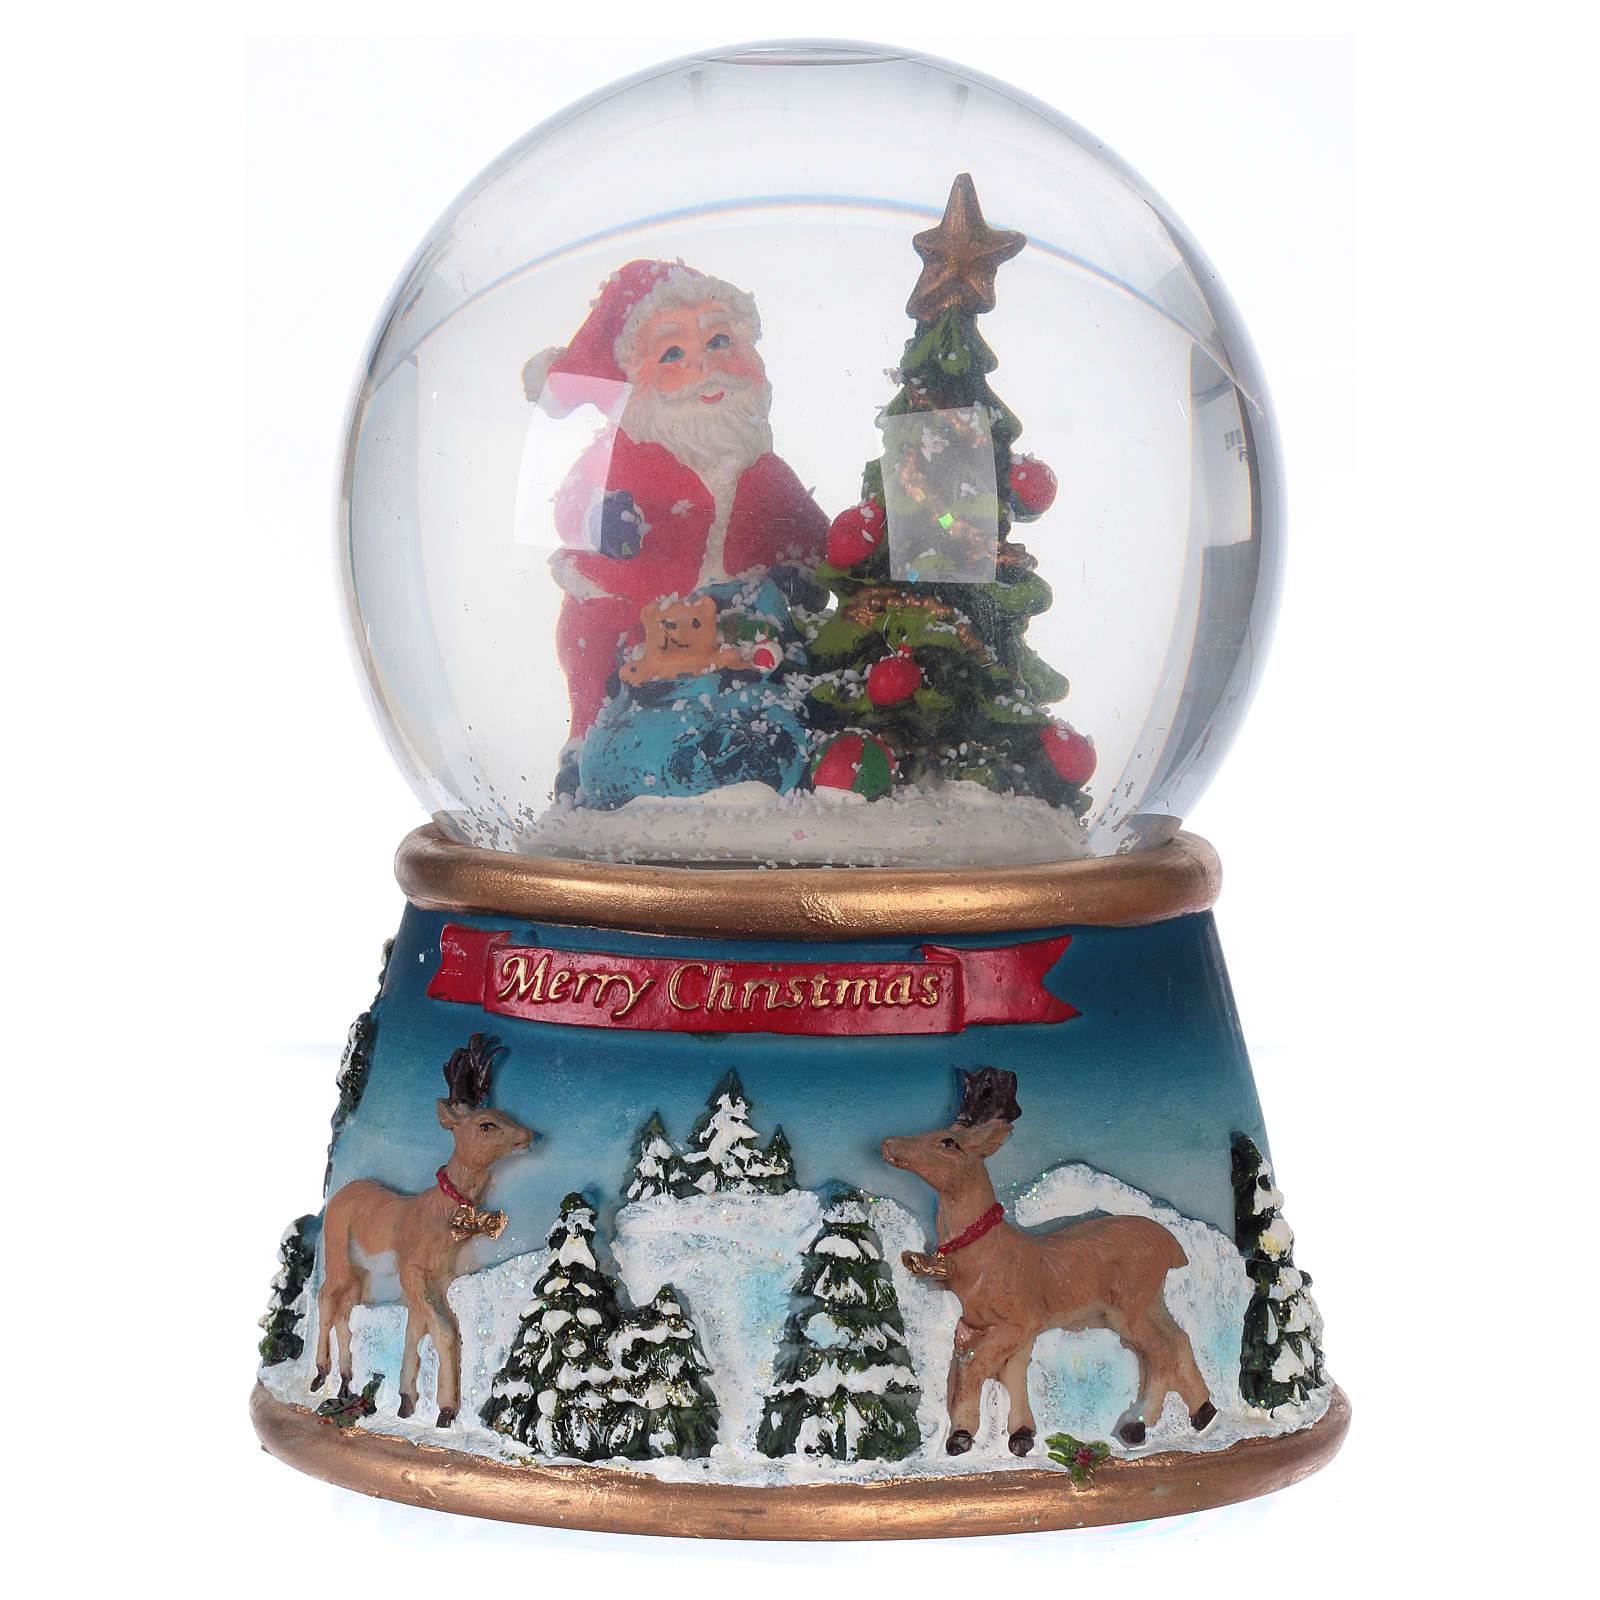 Snow globe with Santa Claus and music, glittered 3